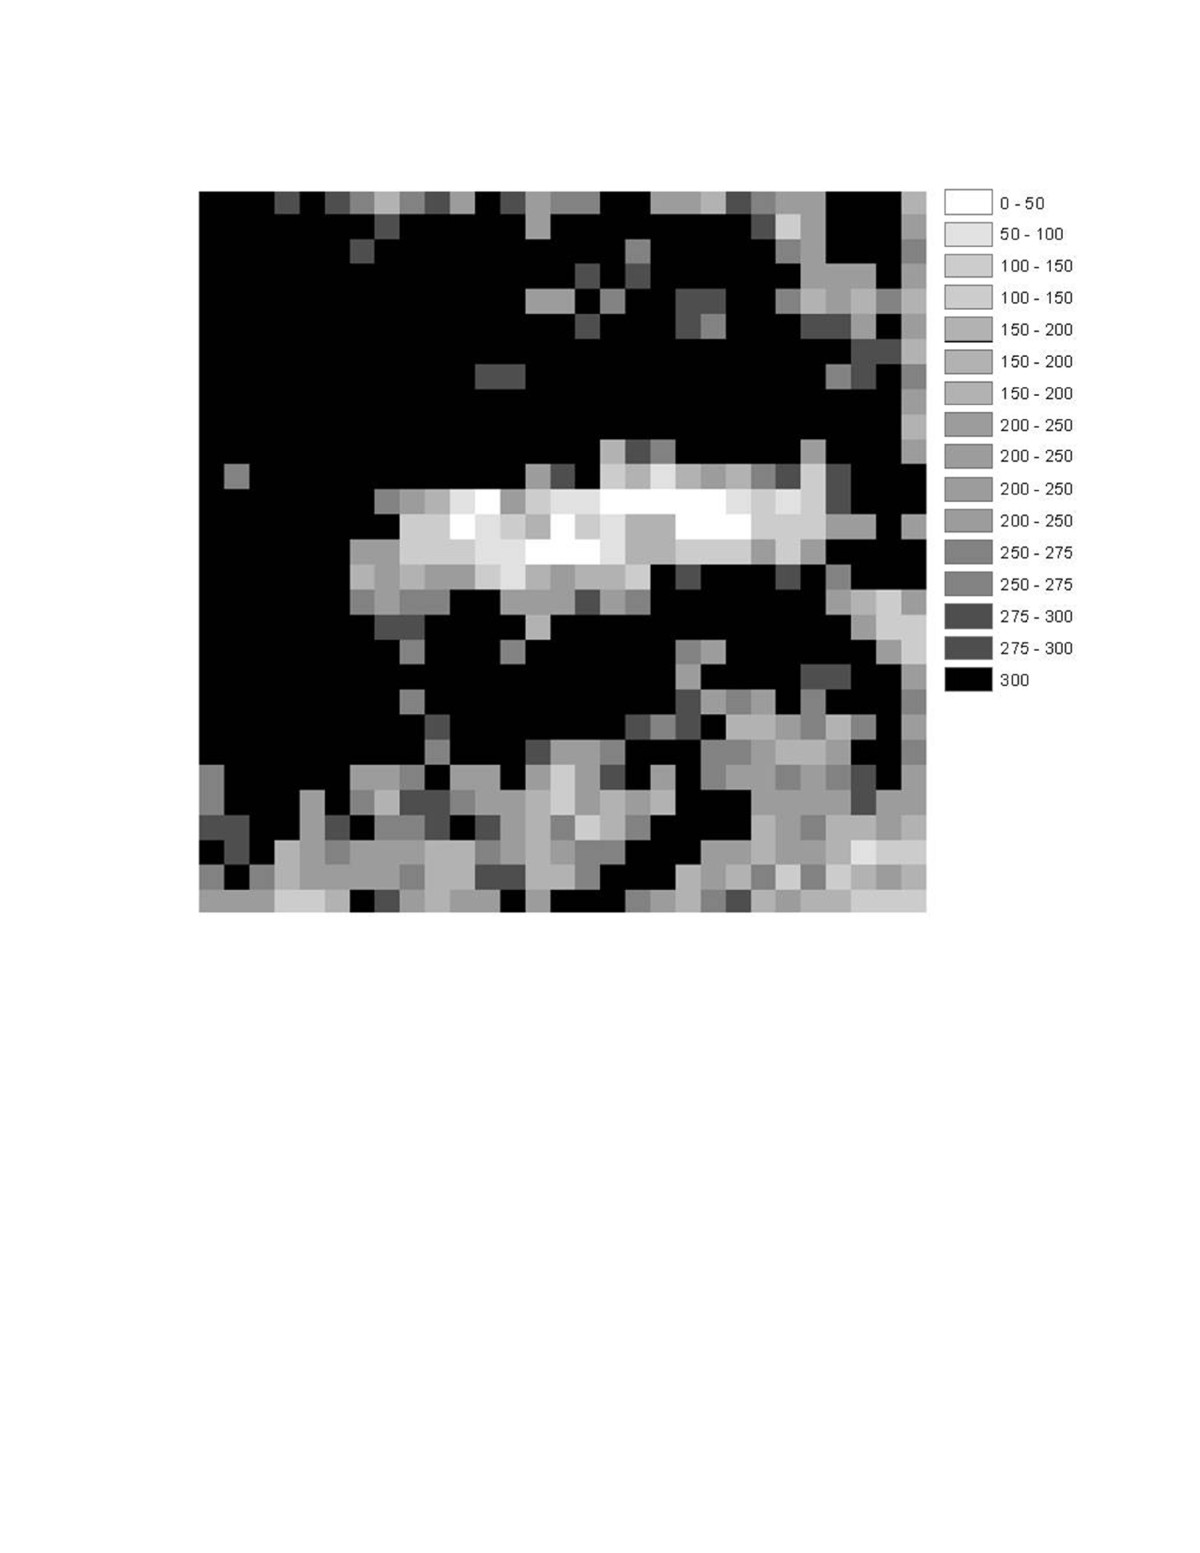 http://static-content.springer.com/image/art%3A10.1186%2F1750-0680-8-8/MediaObjects/13021_2013_Article_94_Fig2_HTML.jpg